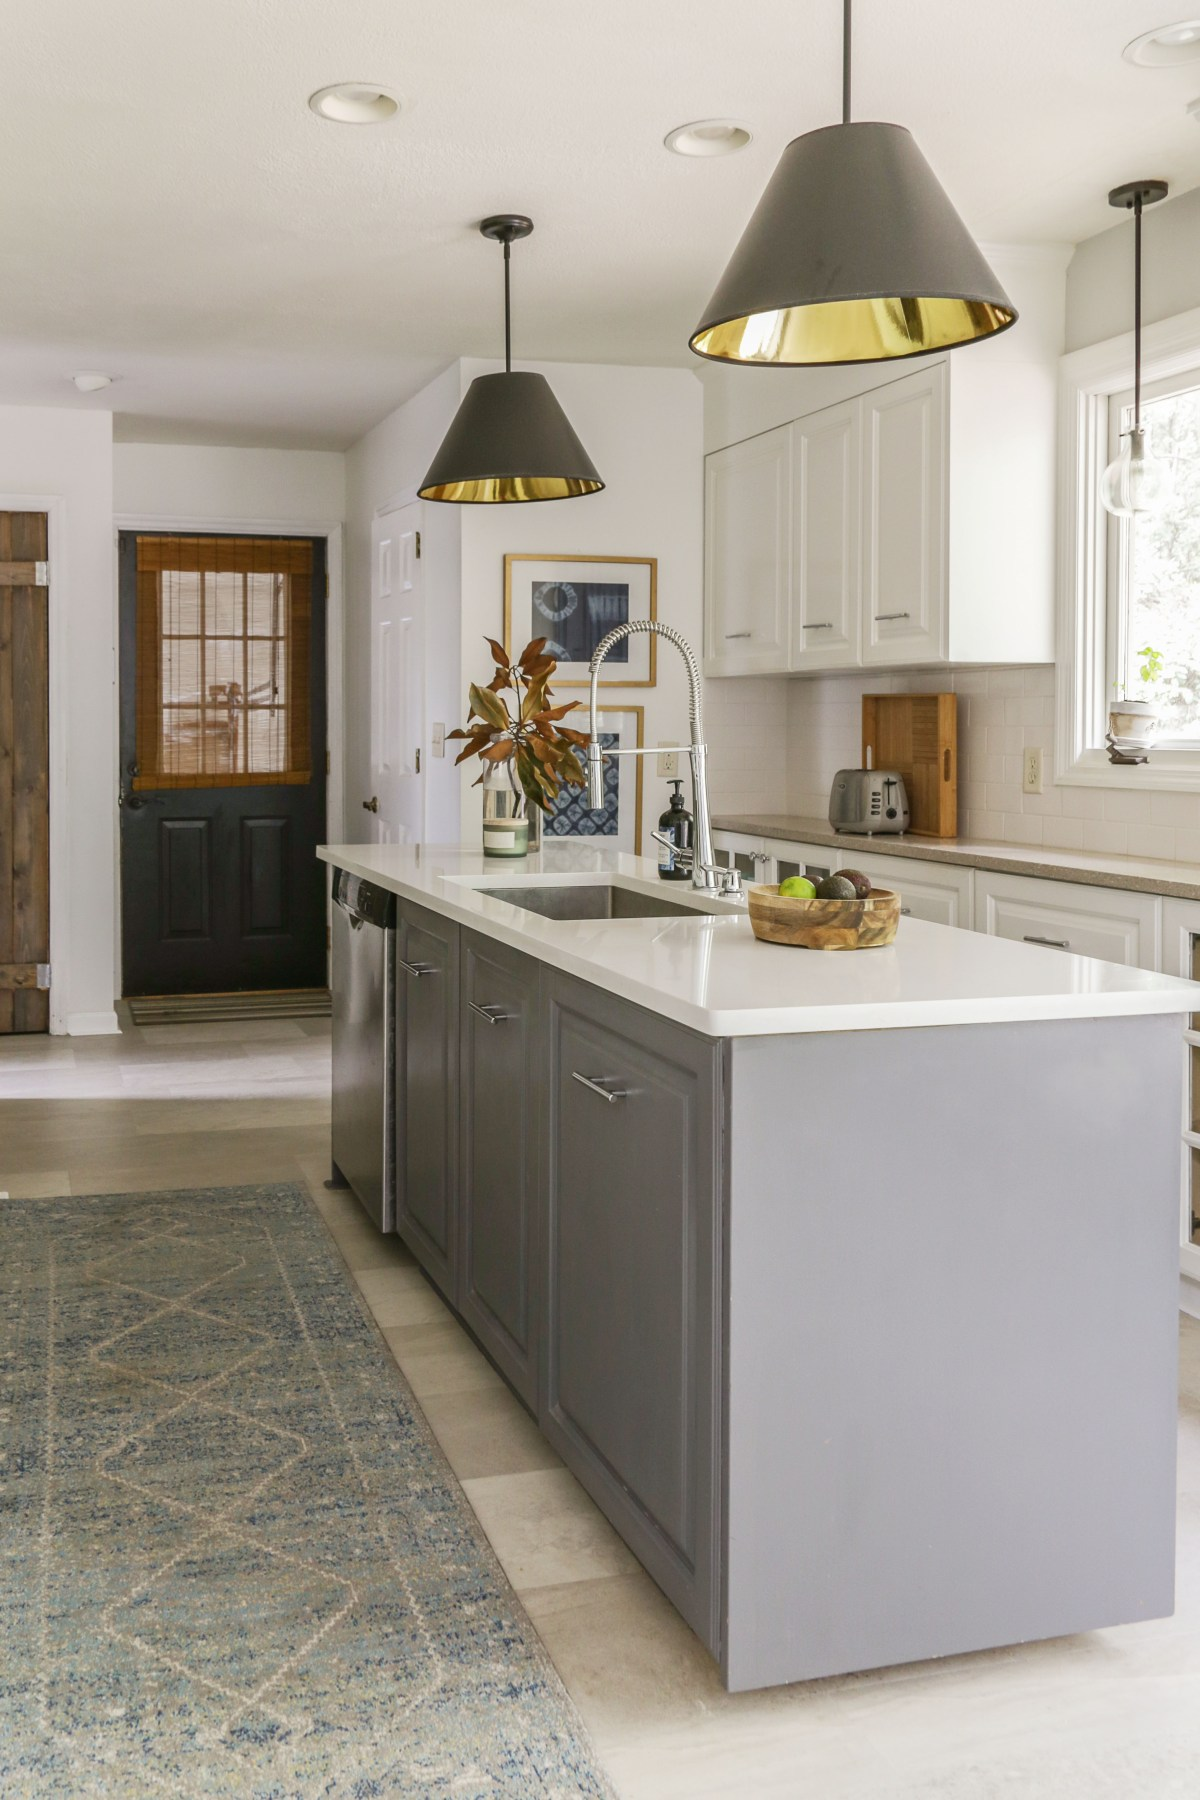 Cool An Honest Review Of My Milk Paint Kitchen Cabinets One Year Home Remodeling Inspirations Basidirectenergyitoicom